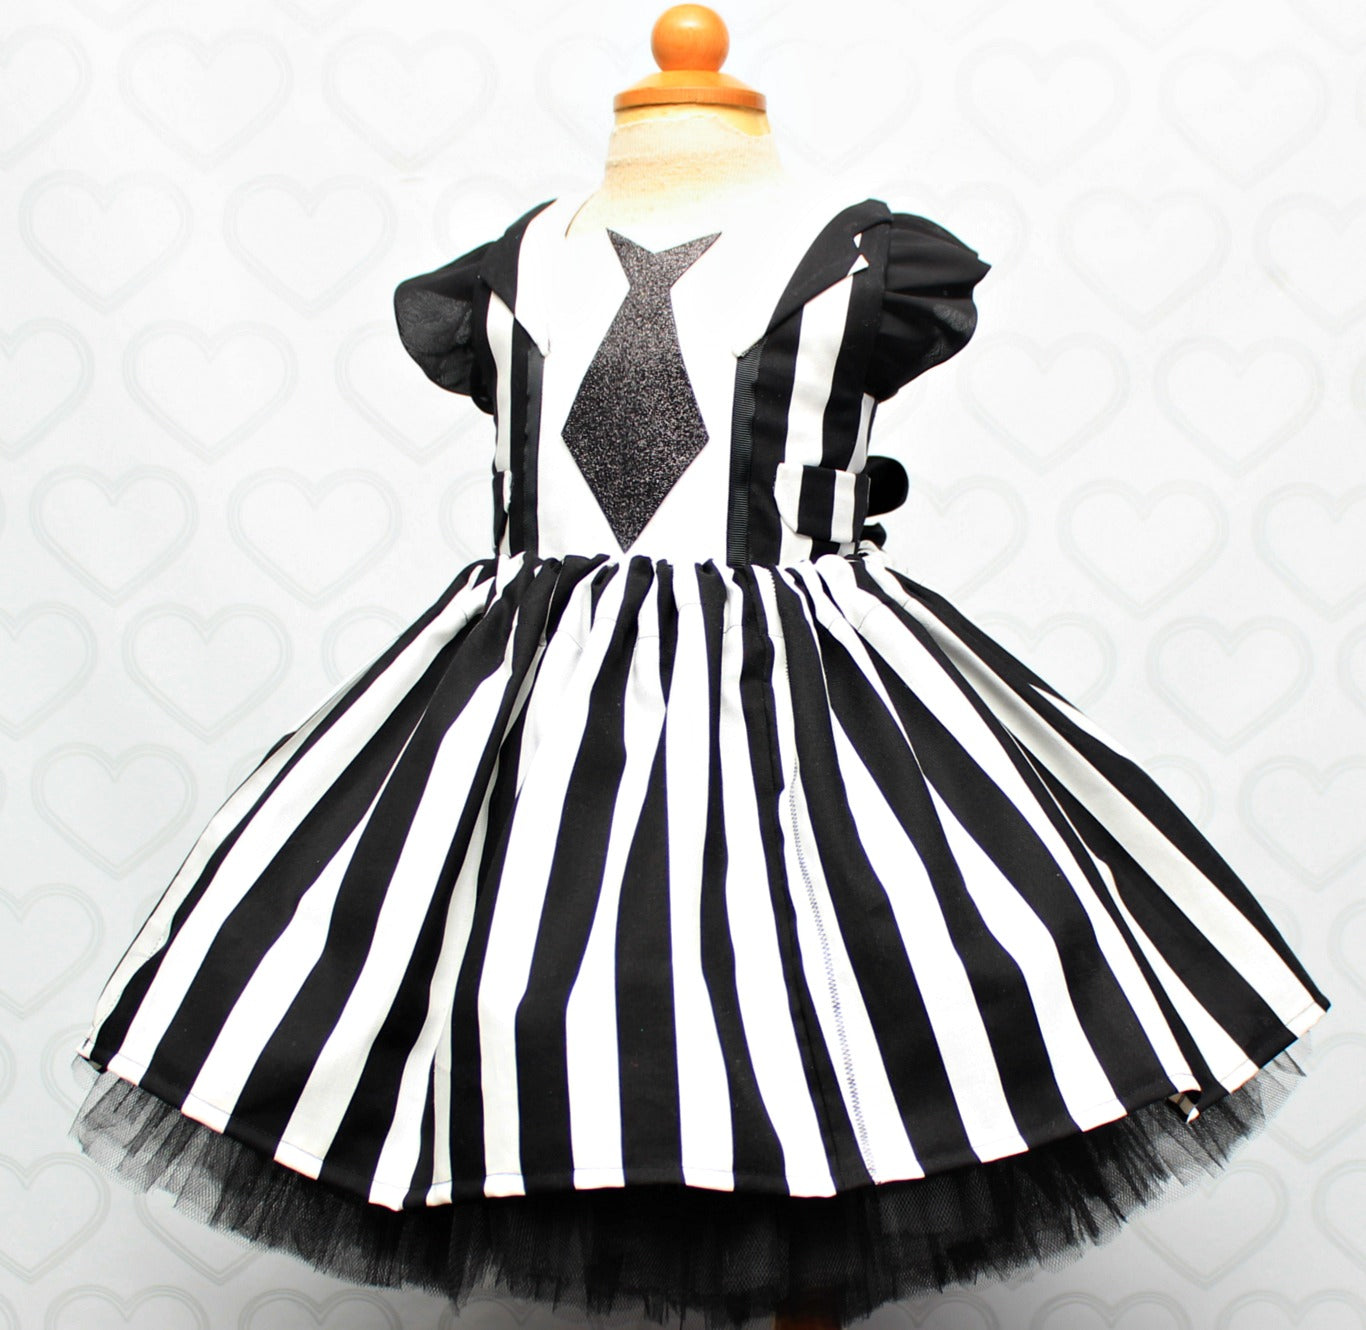 Beetlejuice Dress Beetlejuice Costume Beetlejuice Tutu Dress Pink Toes Hair Bows